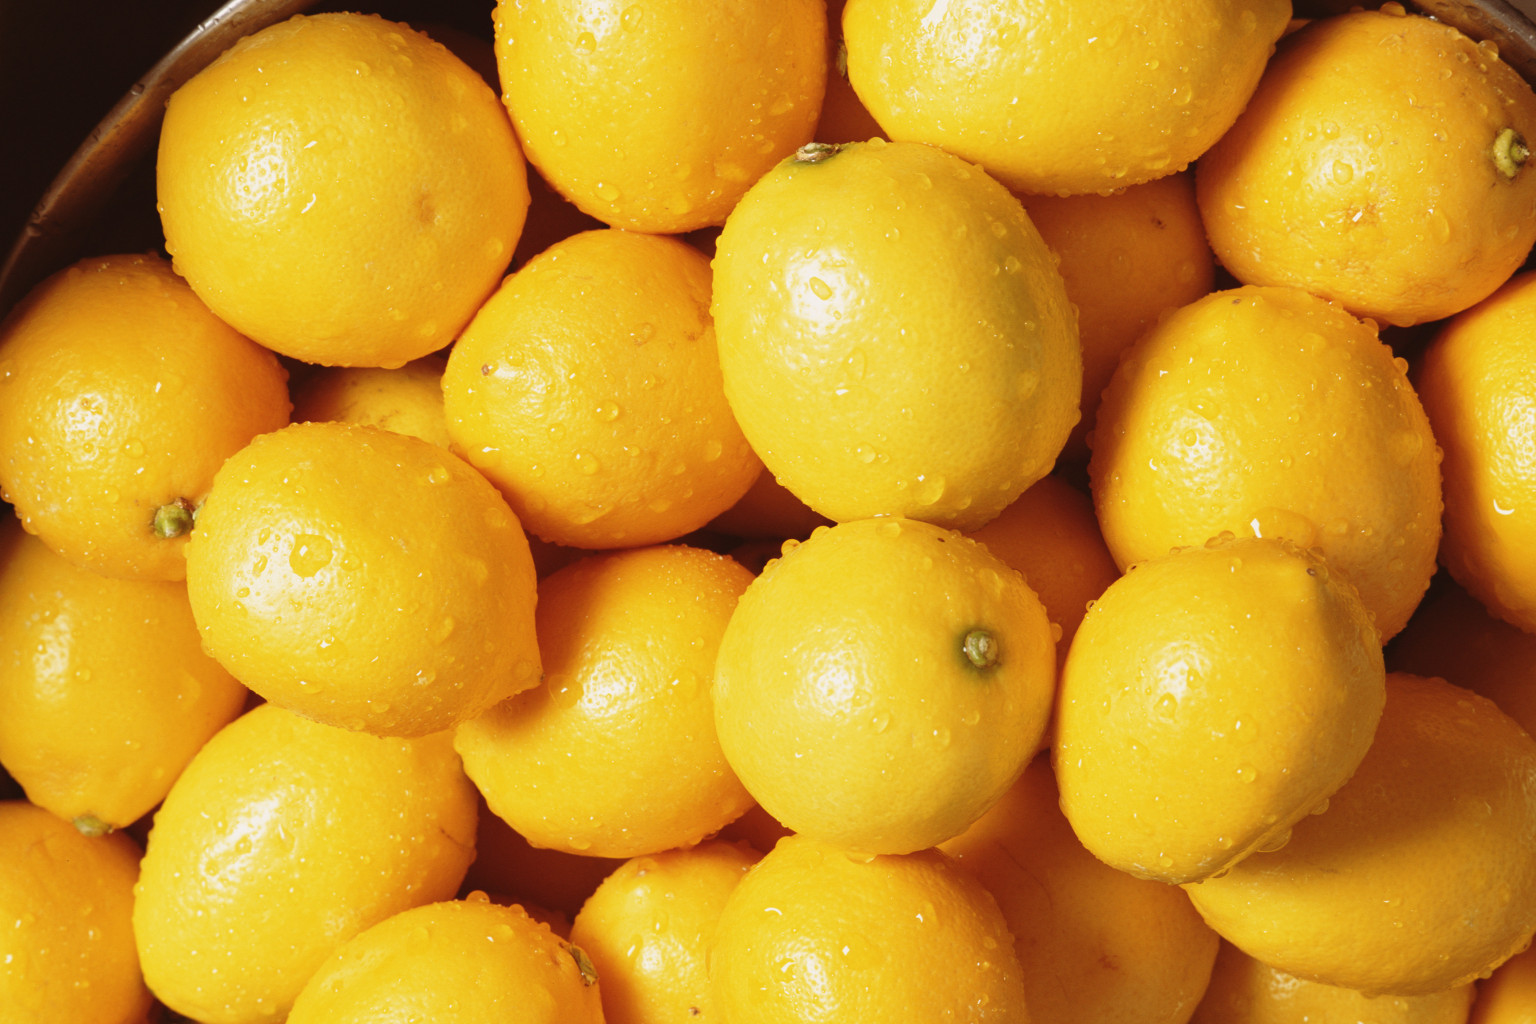 9 Awesome Facts About Lemons Yous Should Know